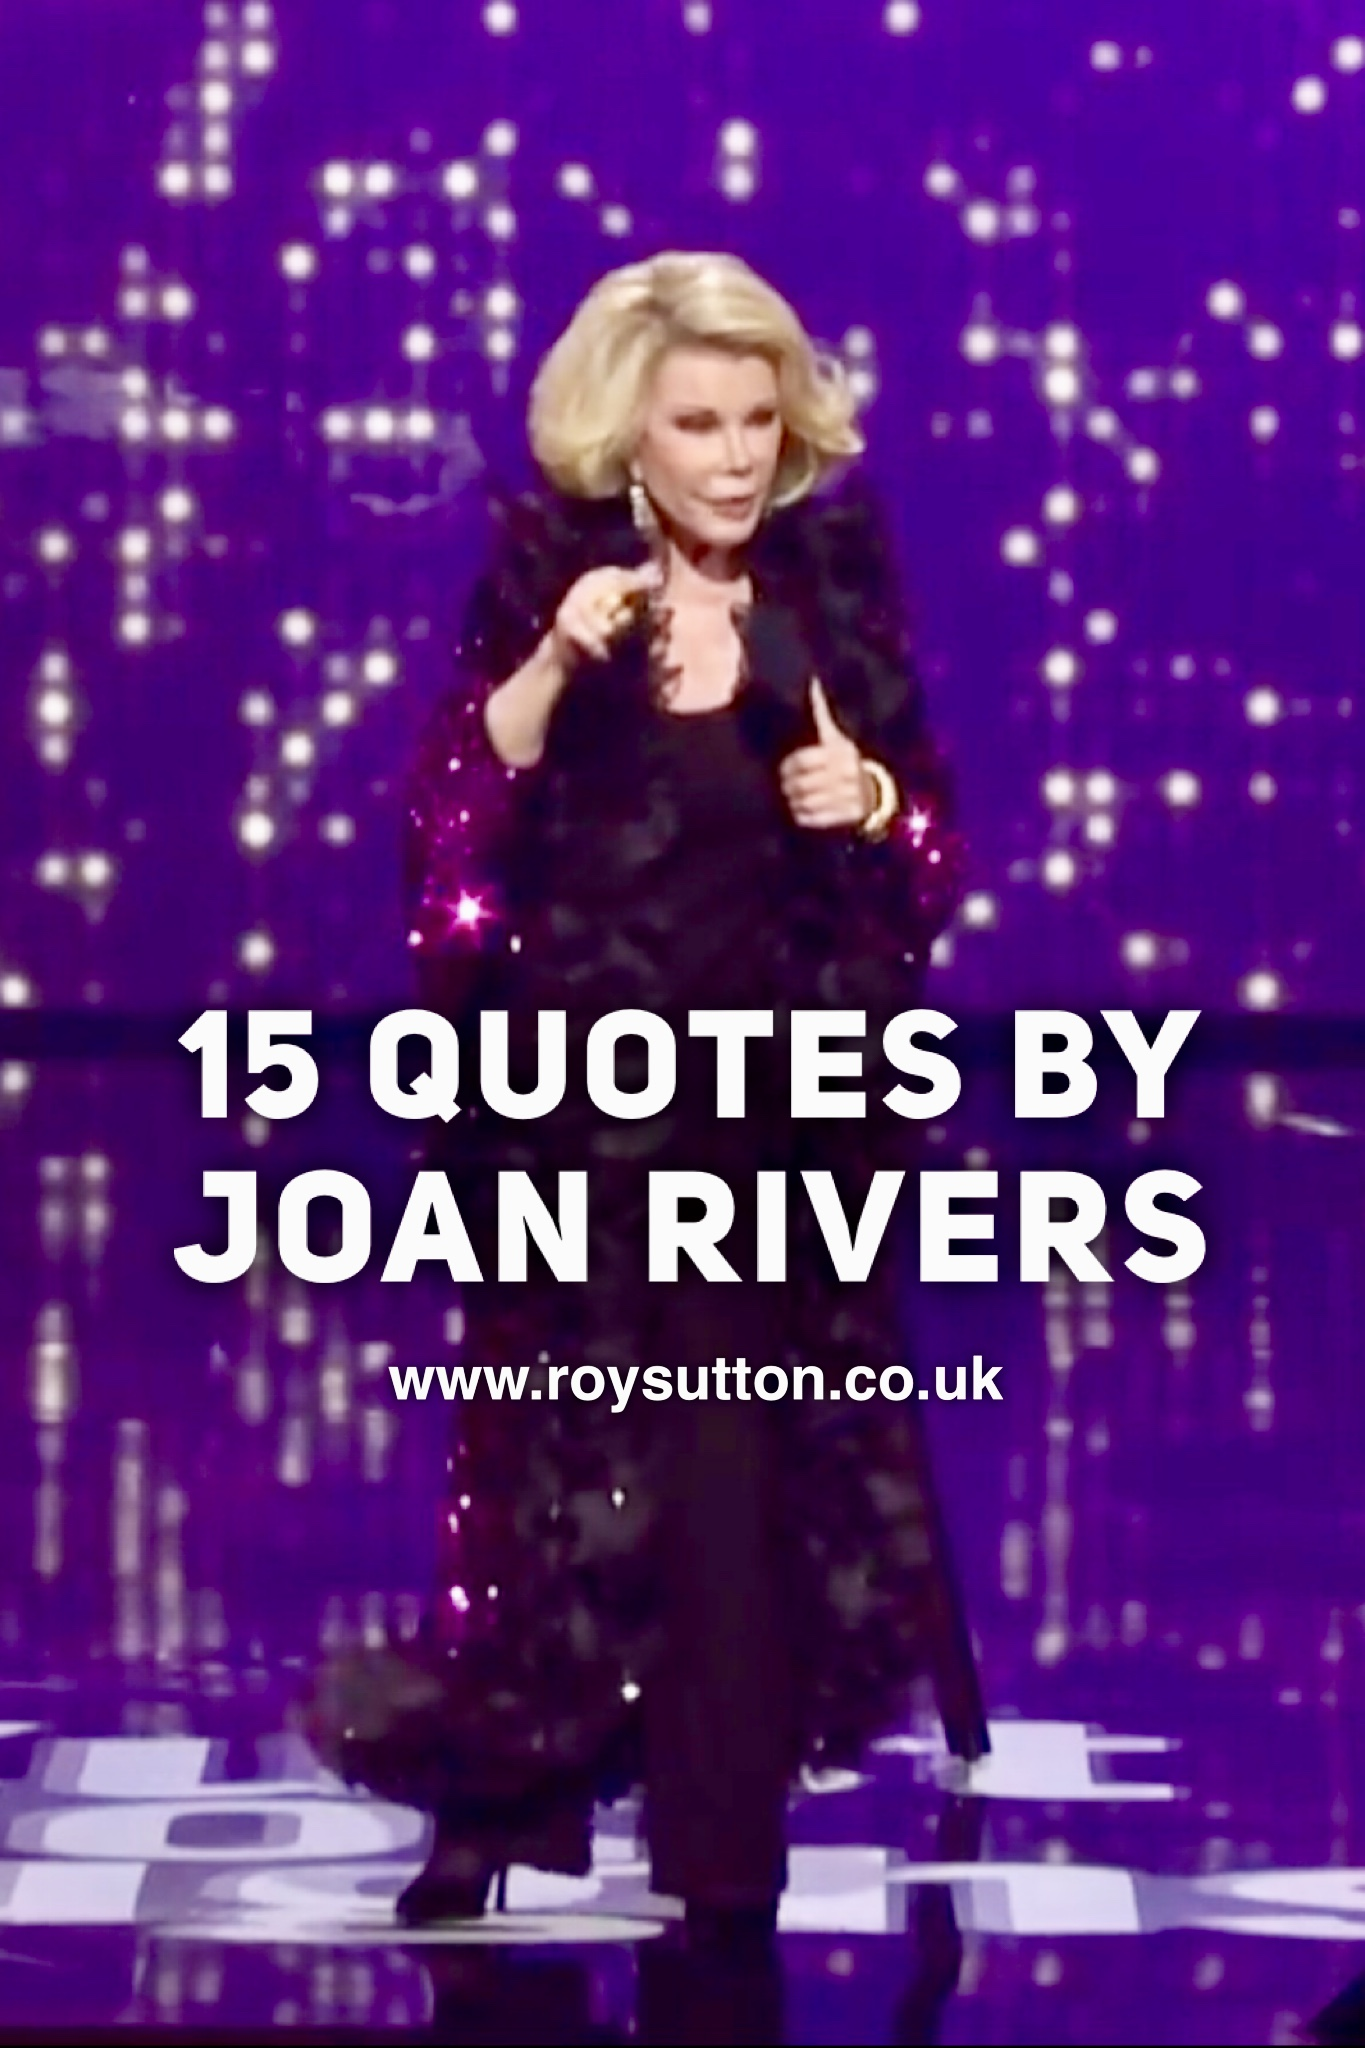 15 Quotes by Joan Rivers - Roy Sutton